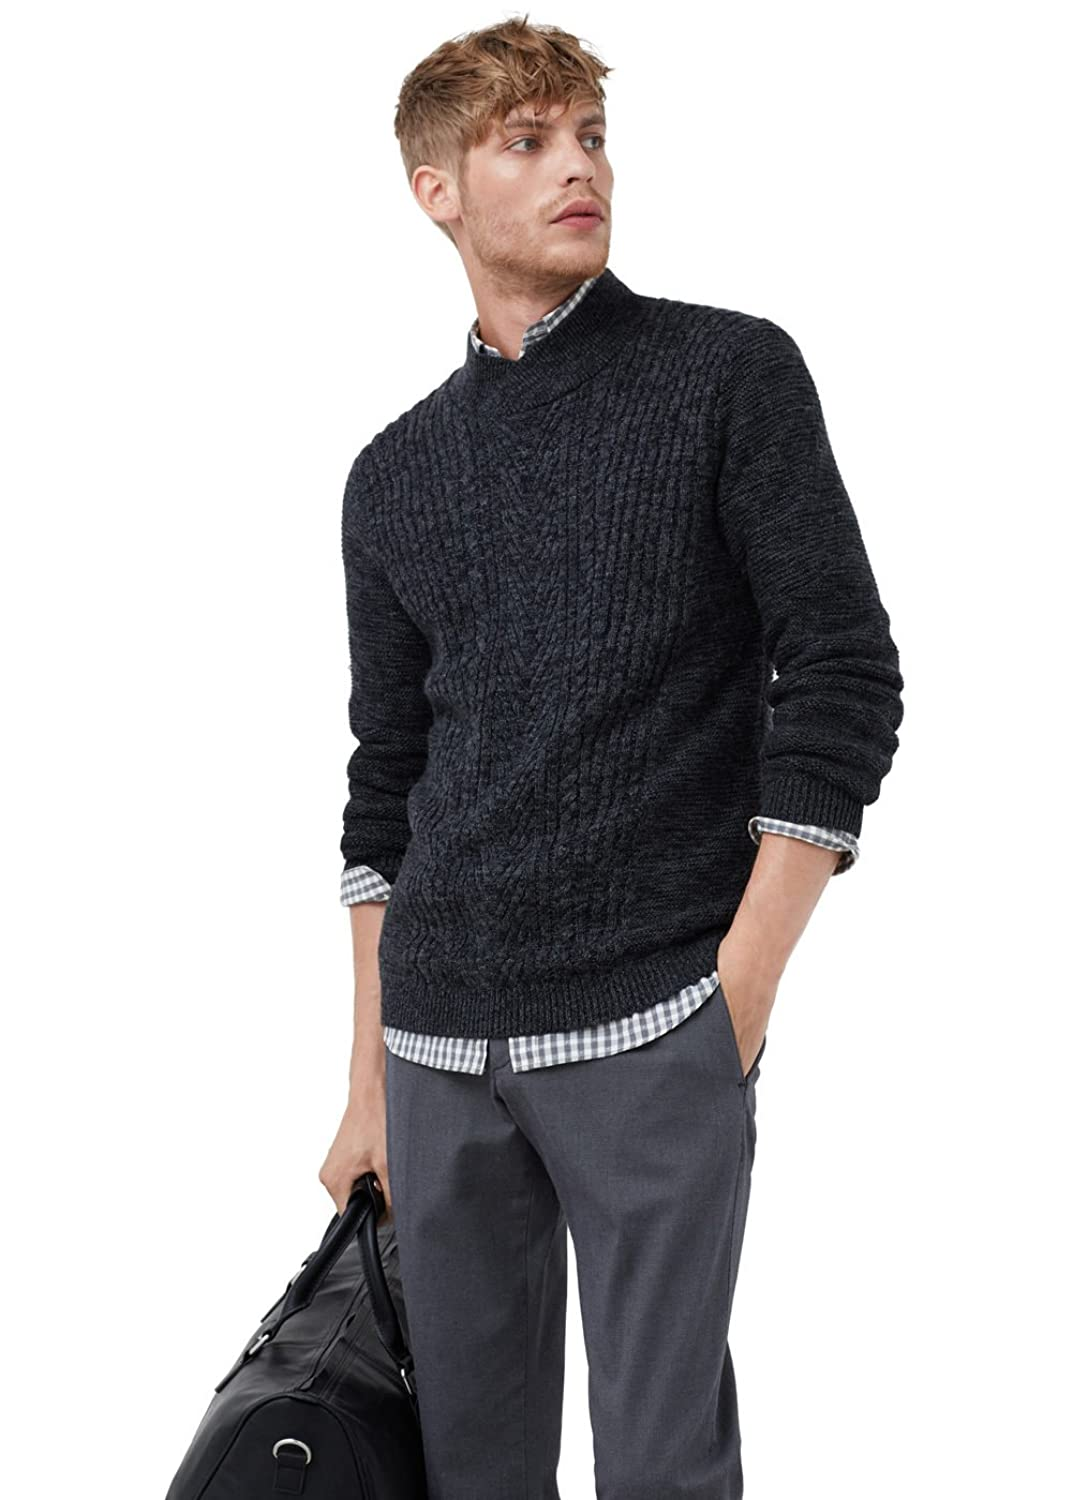 MANGO MAN - Cotton wool-blend sweater - Size:M - Color:Dark Grey